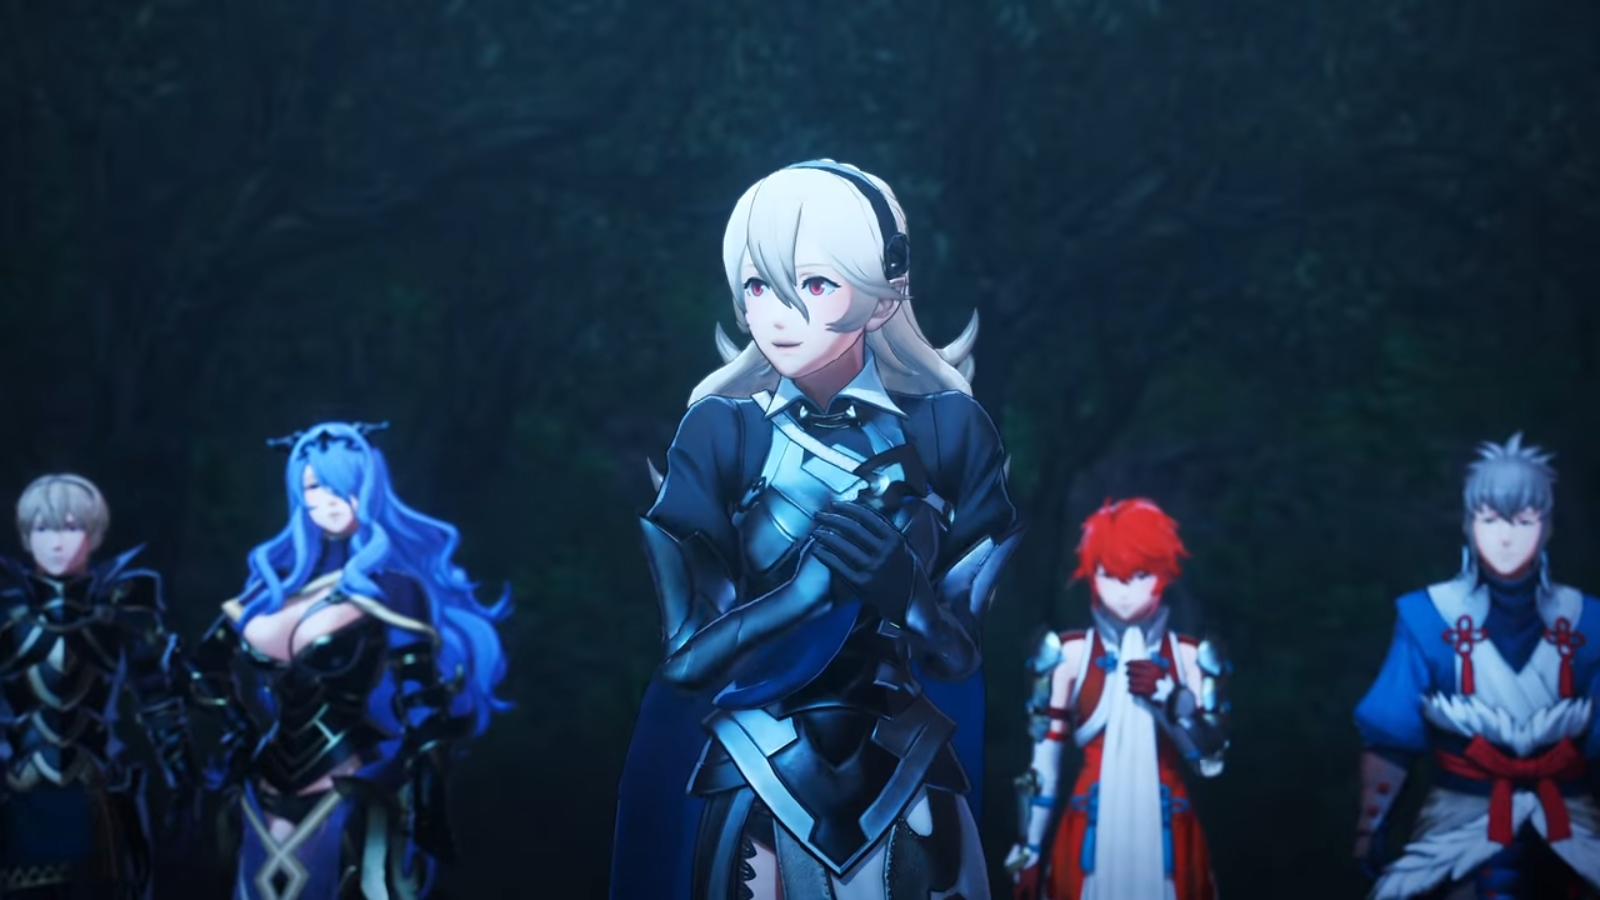 Fire Emblem Warriors New Trailer Launches October 20th In Europe